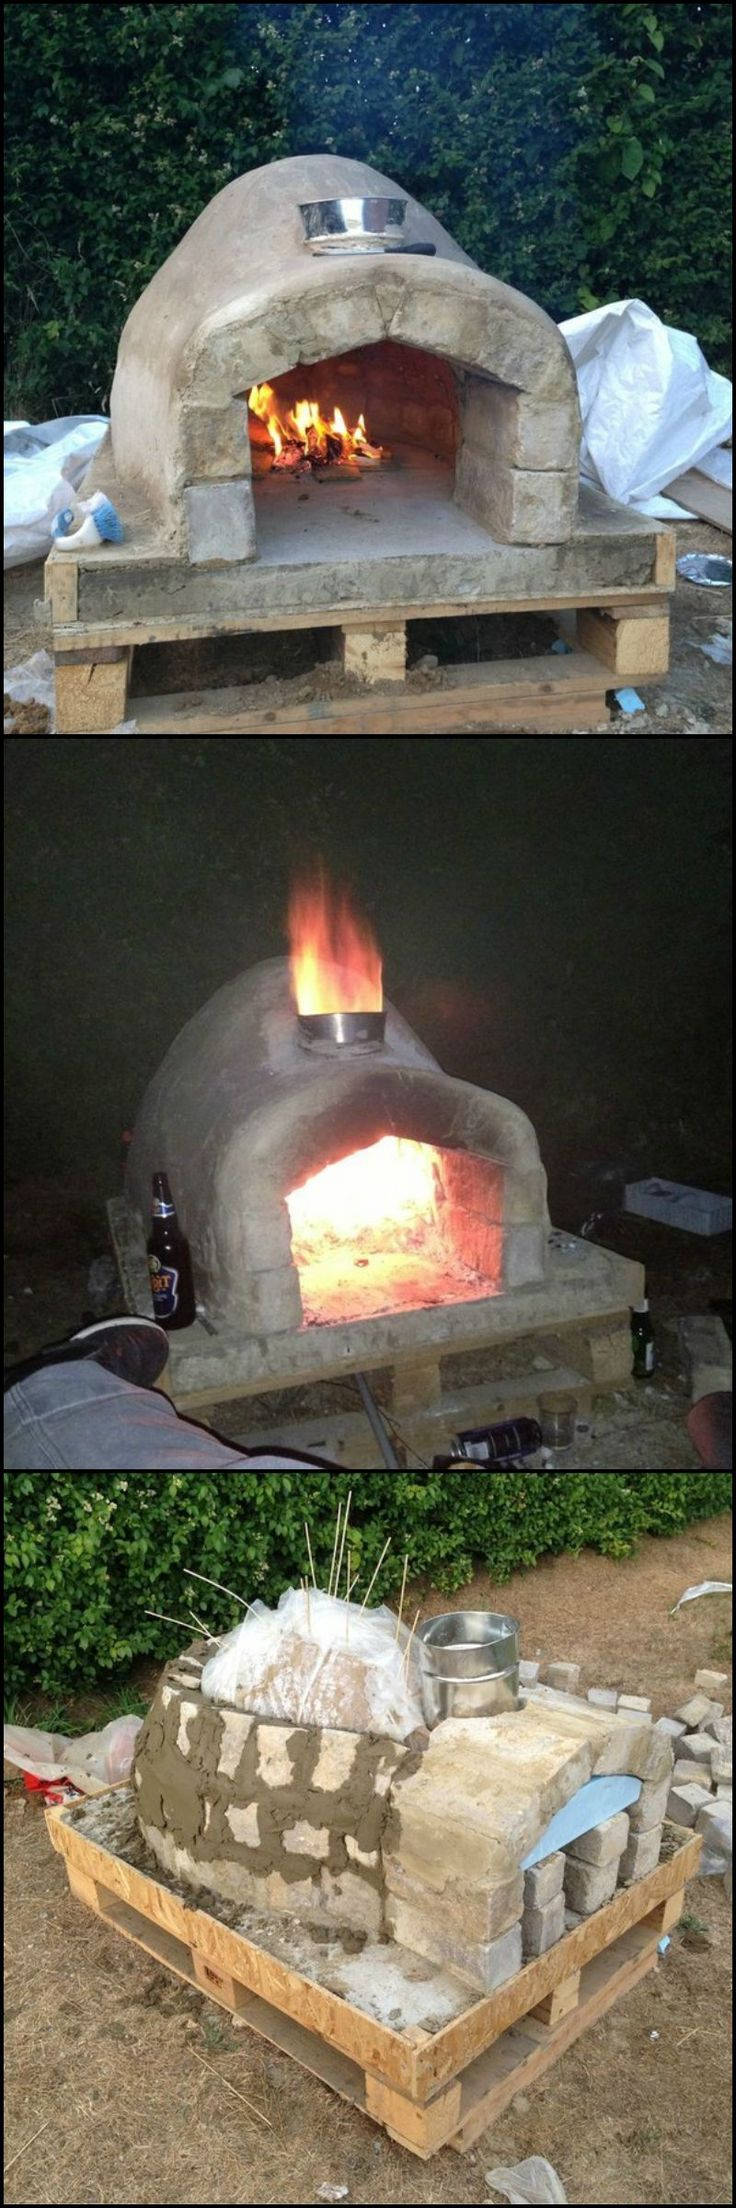 How To Make An Outdoor Pizza Oven  http://theownerbuildernetwork.co/1l9j  Everybody loves pizza. Even better if it's freshly baked and homemade! You don't need to have an outdoor kitchen for this to be possible. This hand-built outdoor pizza oven is the solution.